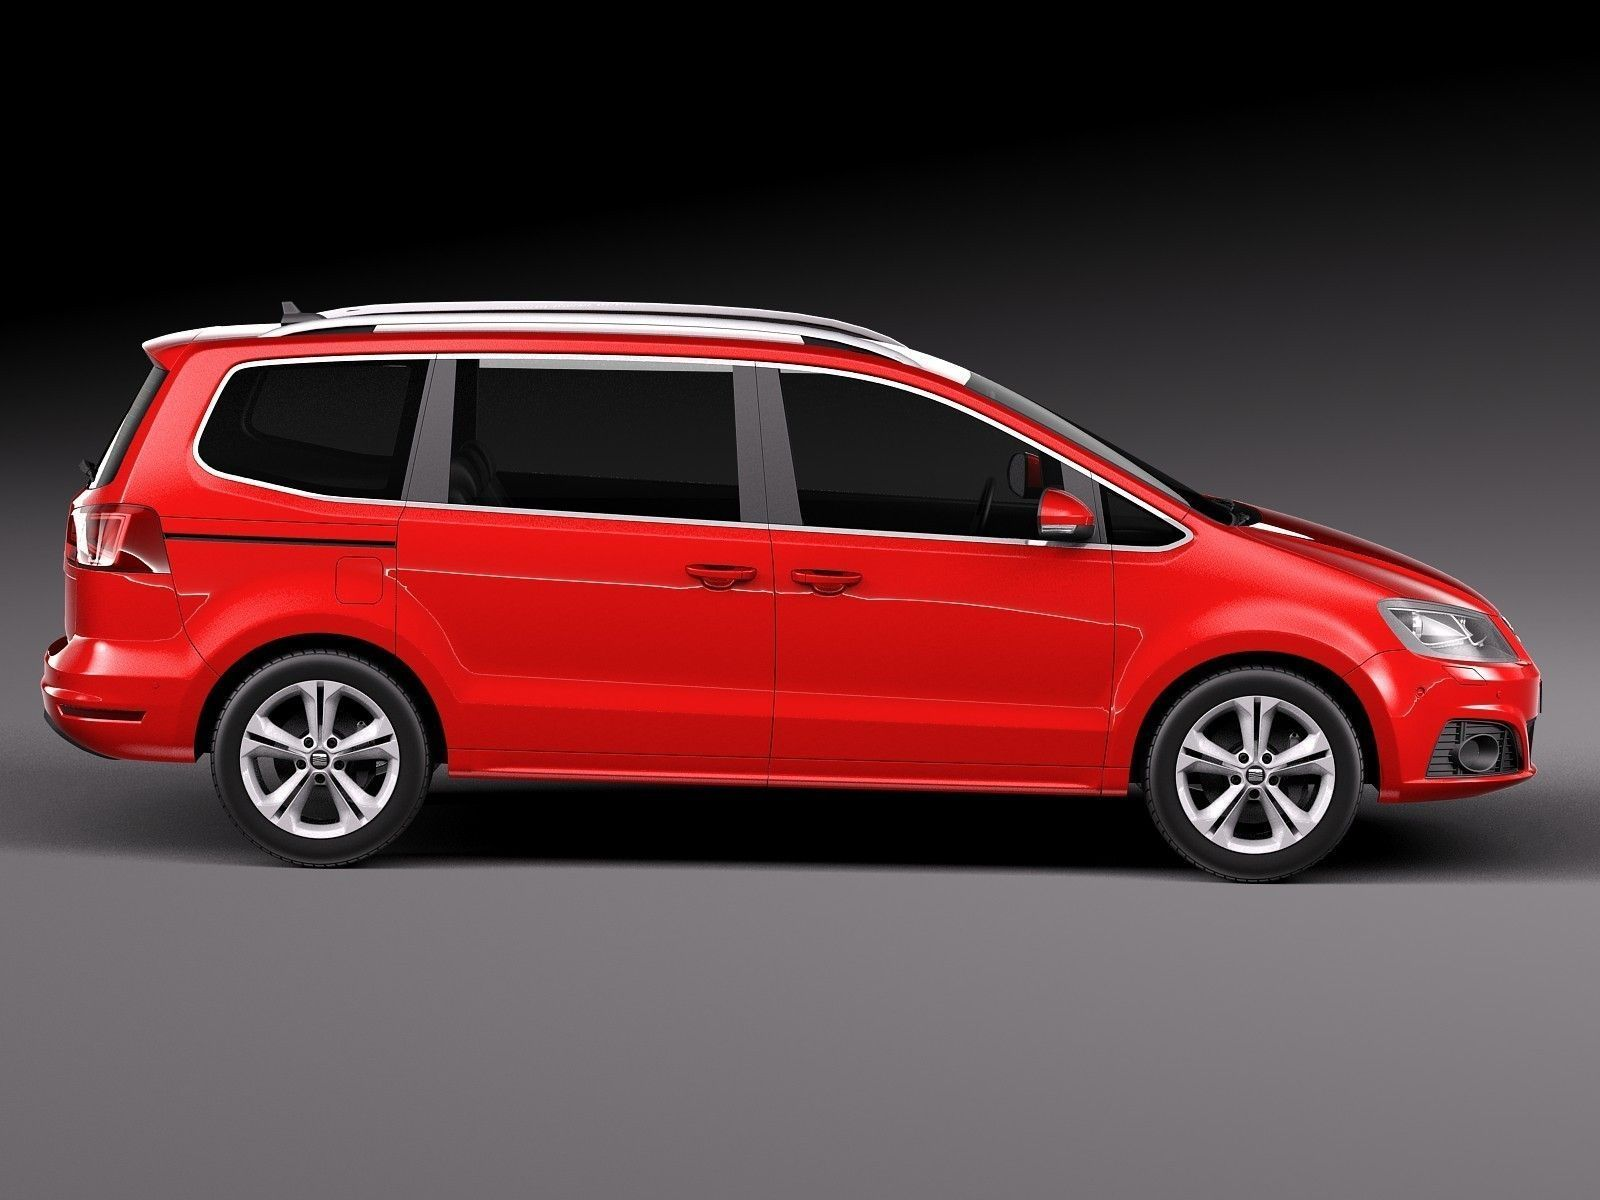 seat alhambra 2016 3d model max obj 3ds fbx c4d lwo. Black Bedroom Furniture Sets. Home Design Ideas